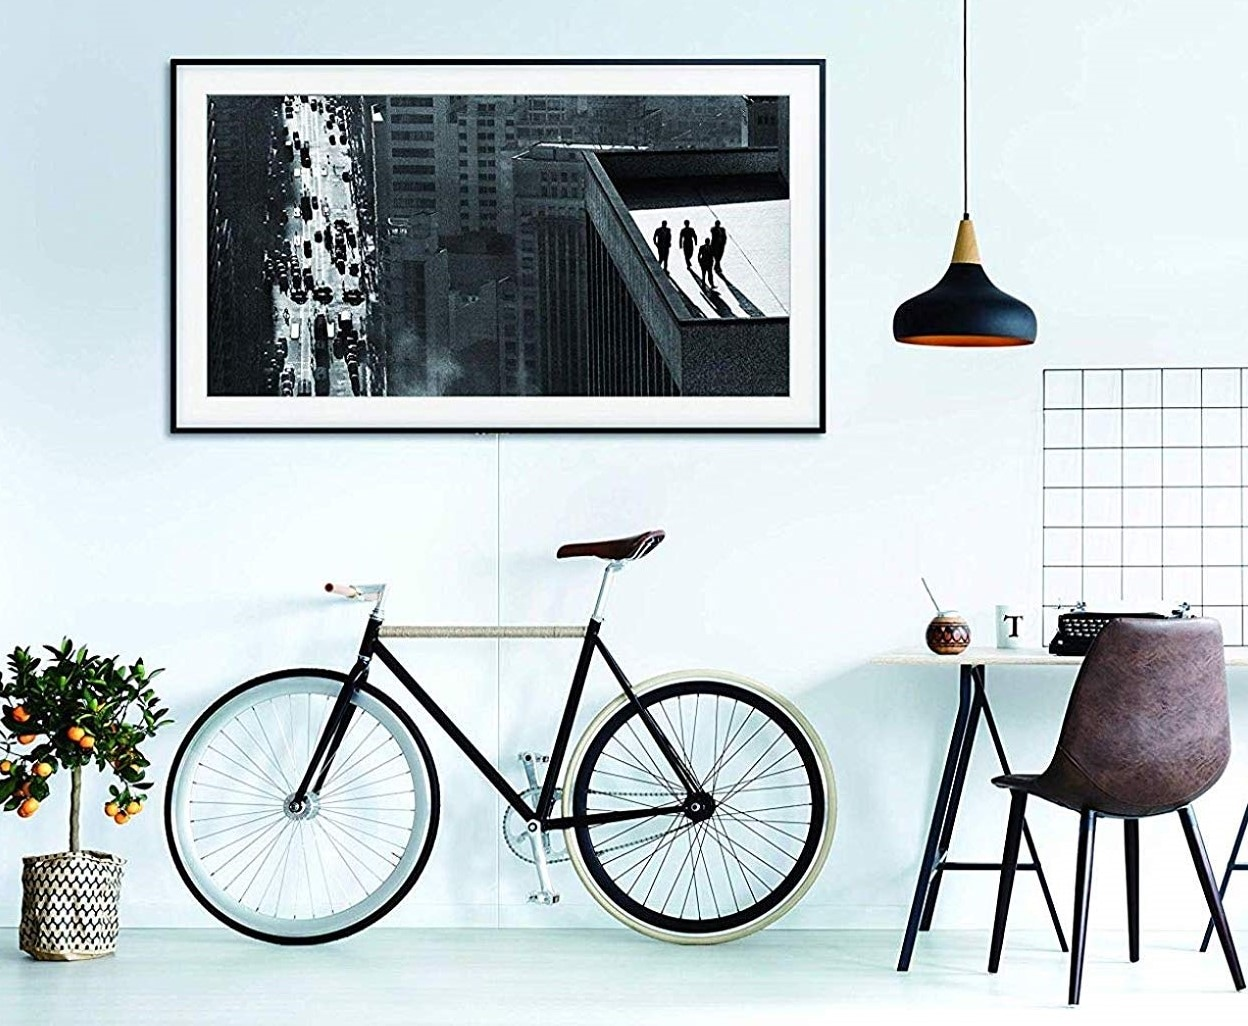 Migliori TV Black Week Amazon: Samsung The Frame, Sony Android TV e Philips Ambilight